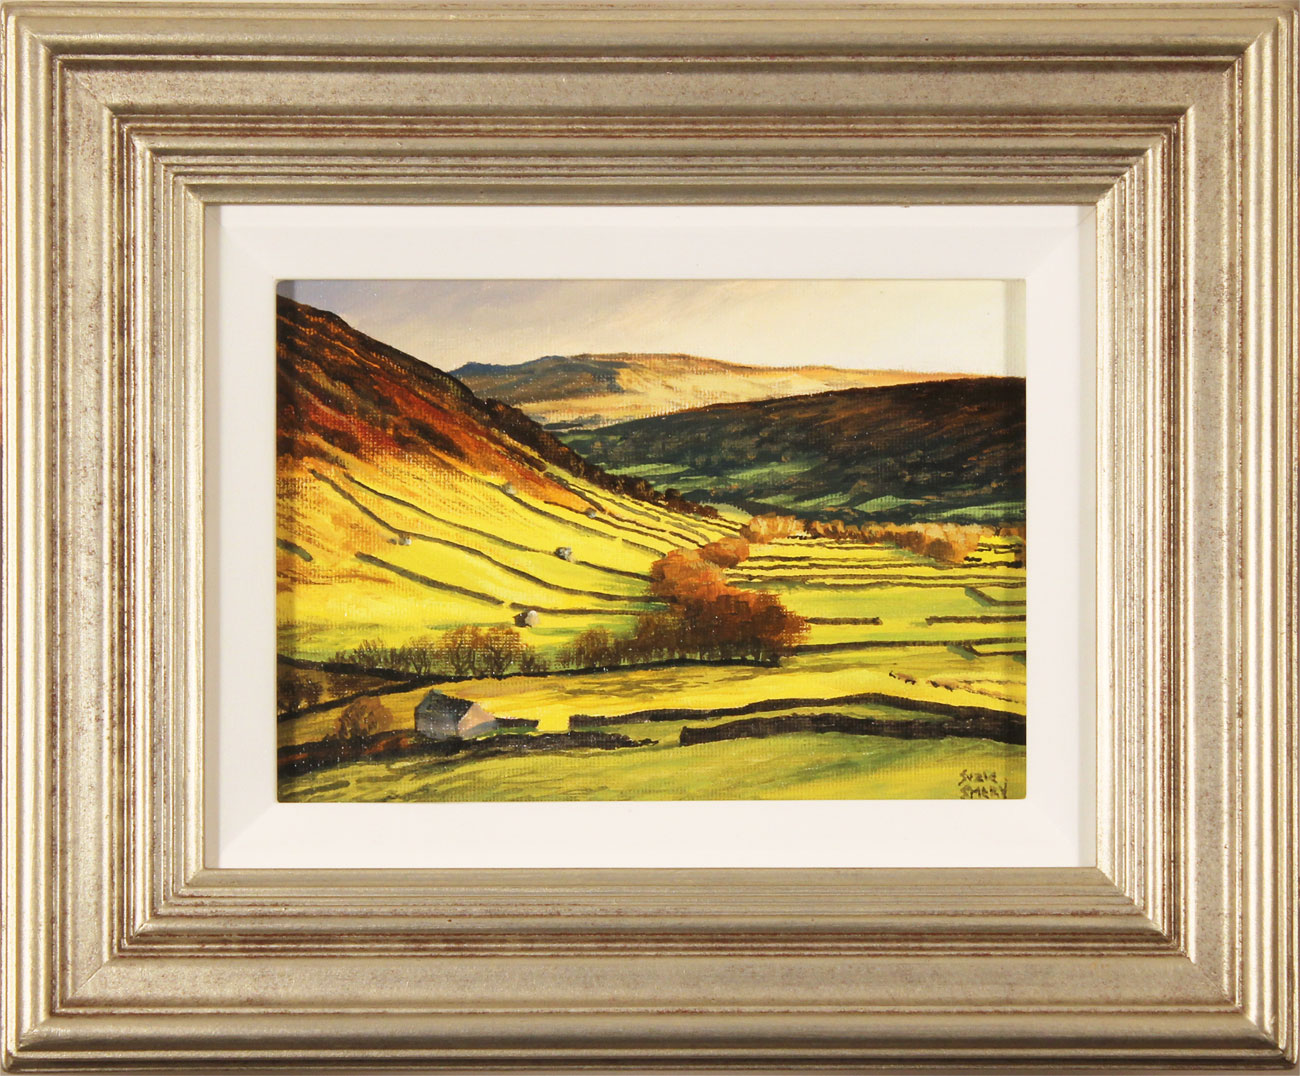 Suzie Emery, Original acrylic painting on board, Swaledale, click to enlarge